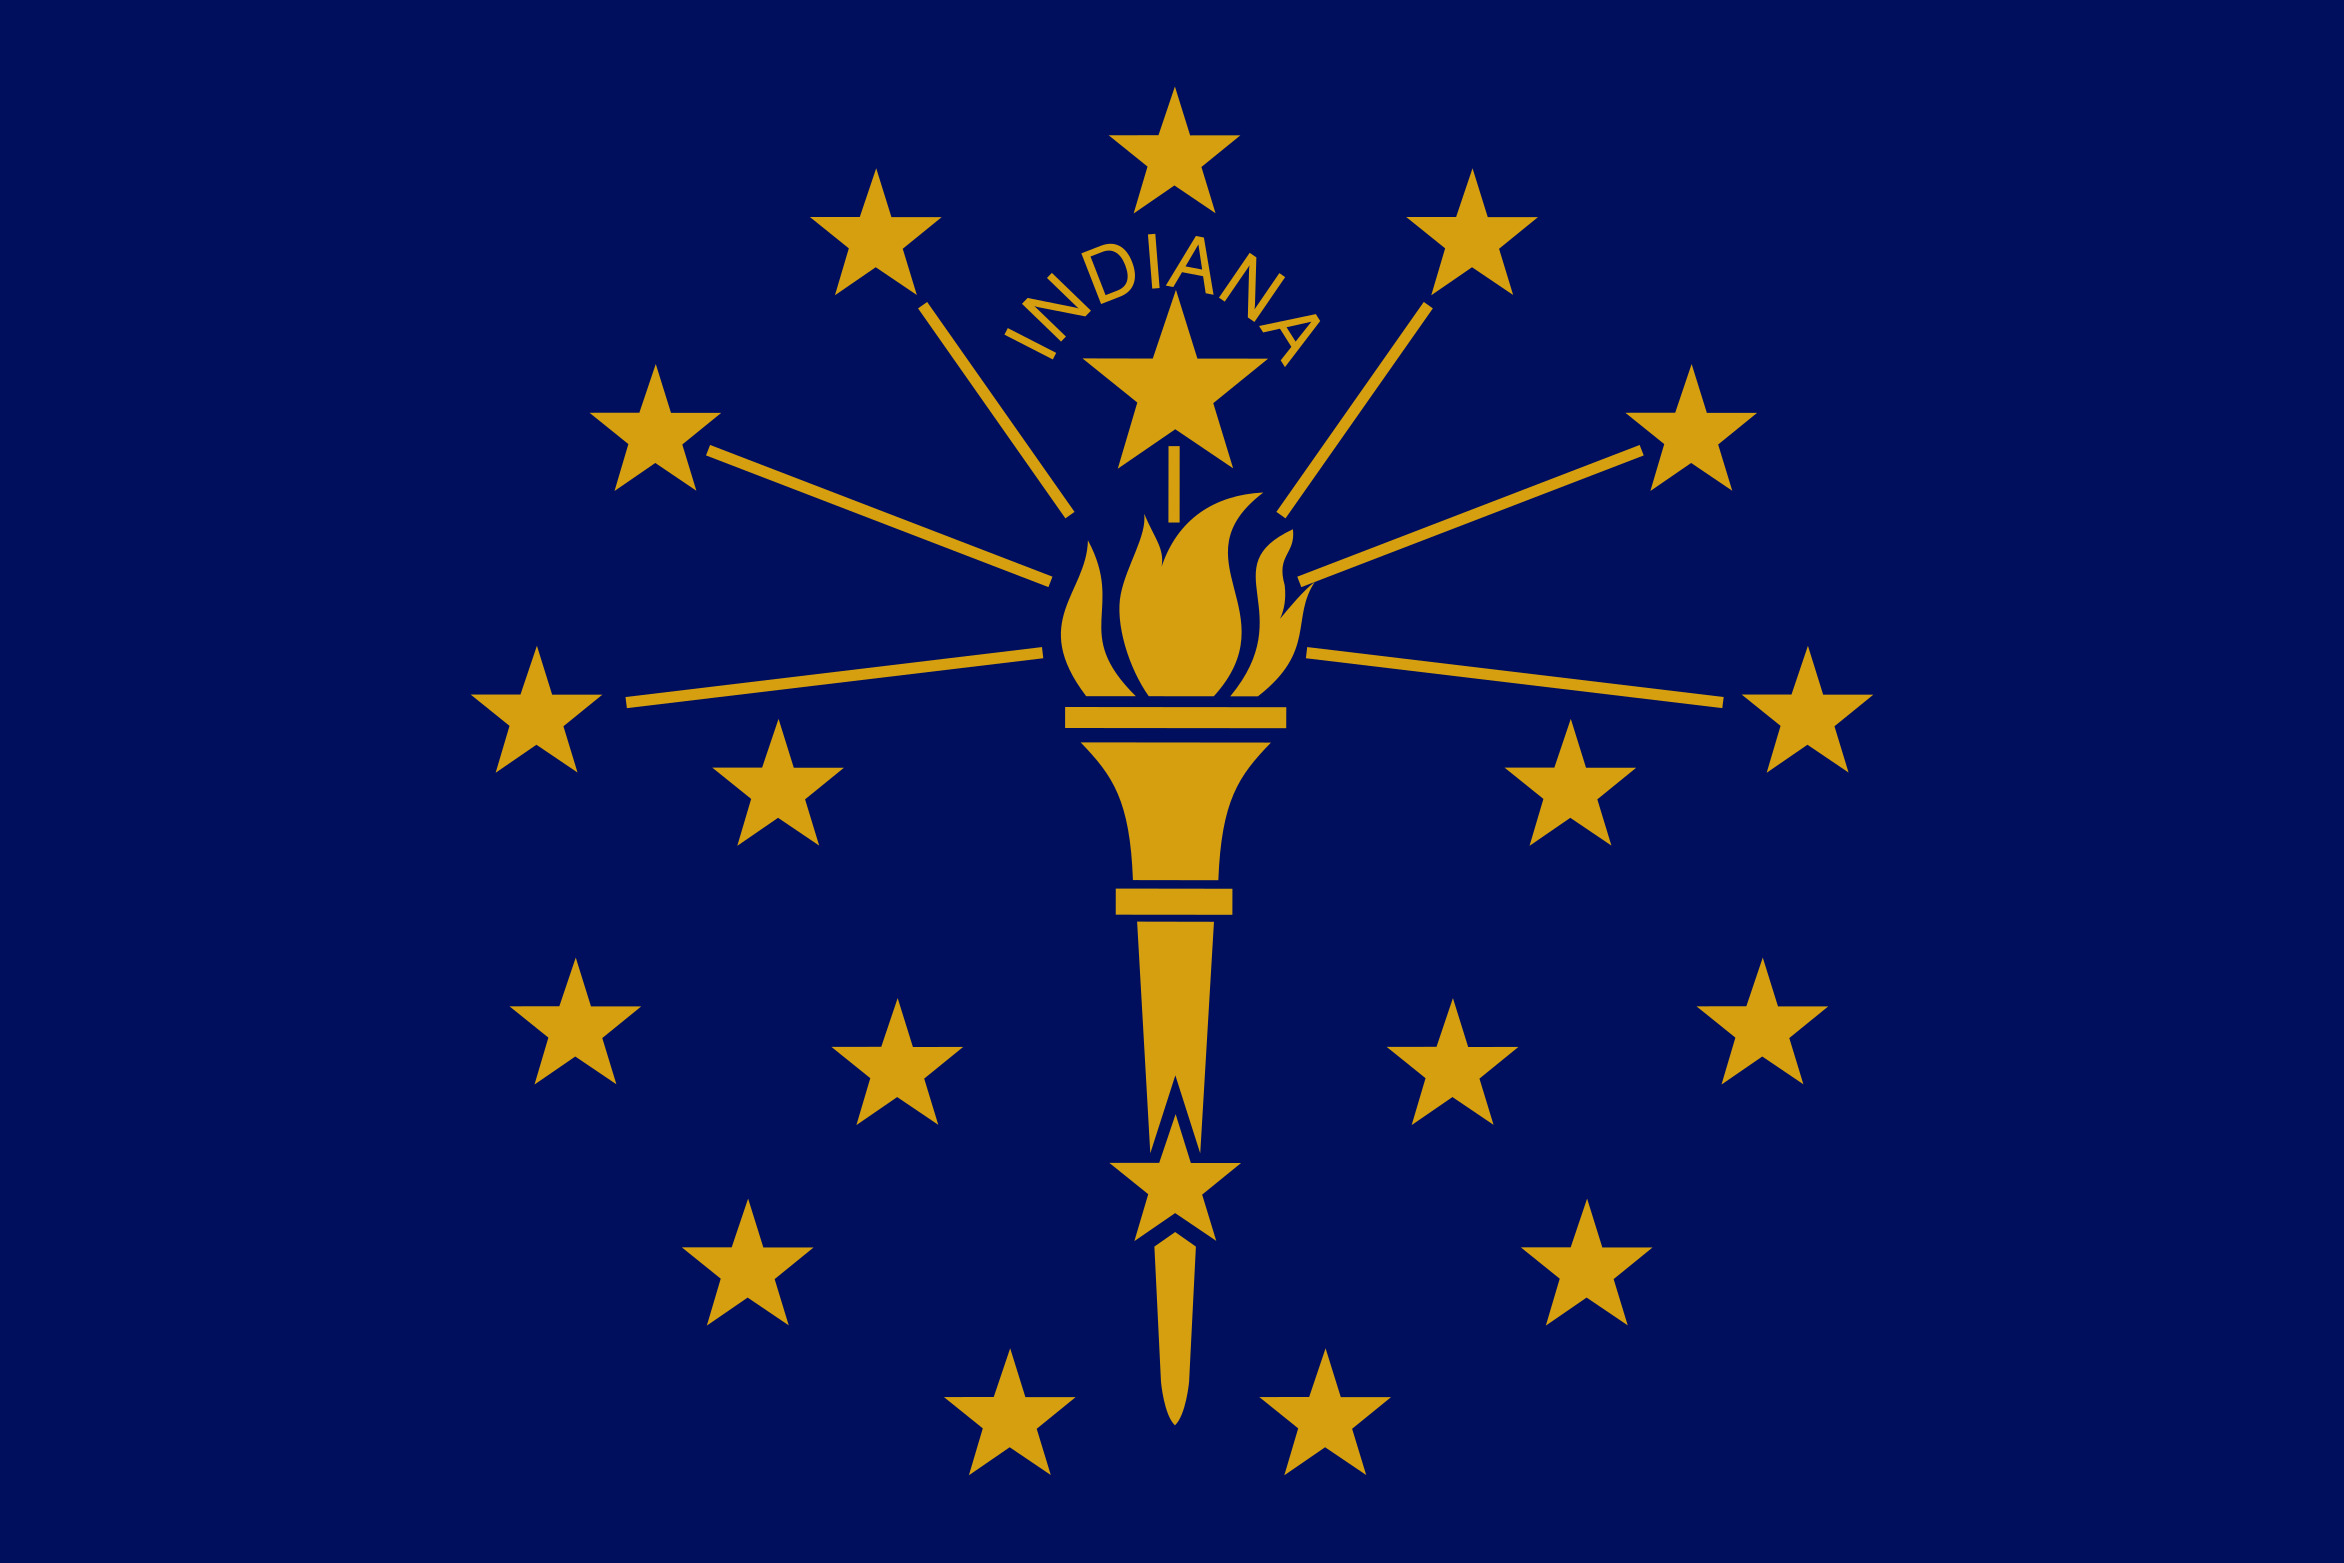 Indiana State Flag Colors